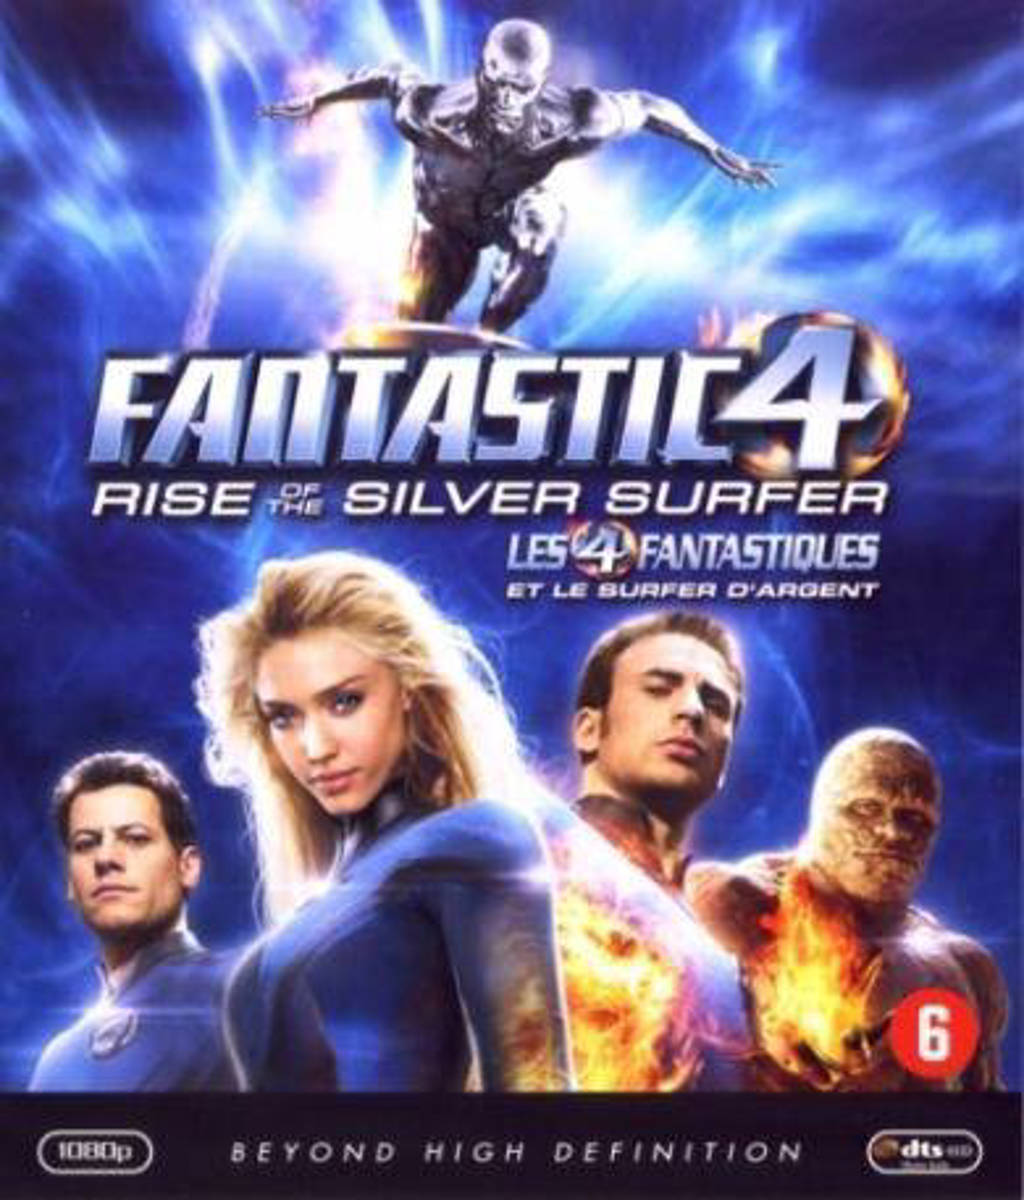 Fantastic 4 - Rise of the silver surfer (Blu-ray)